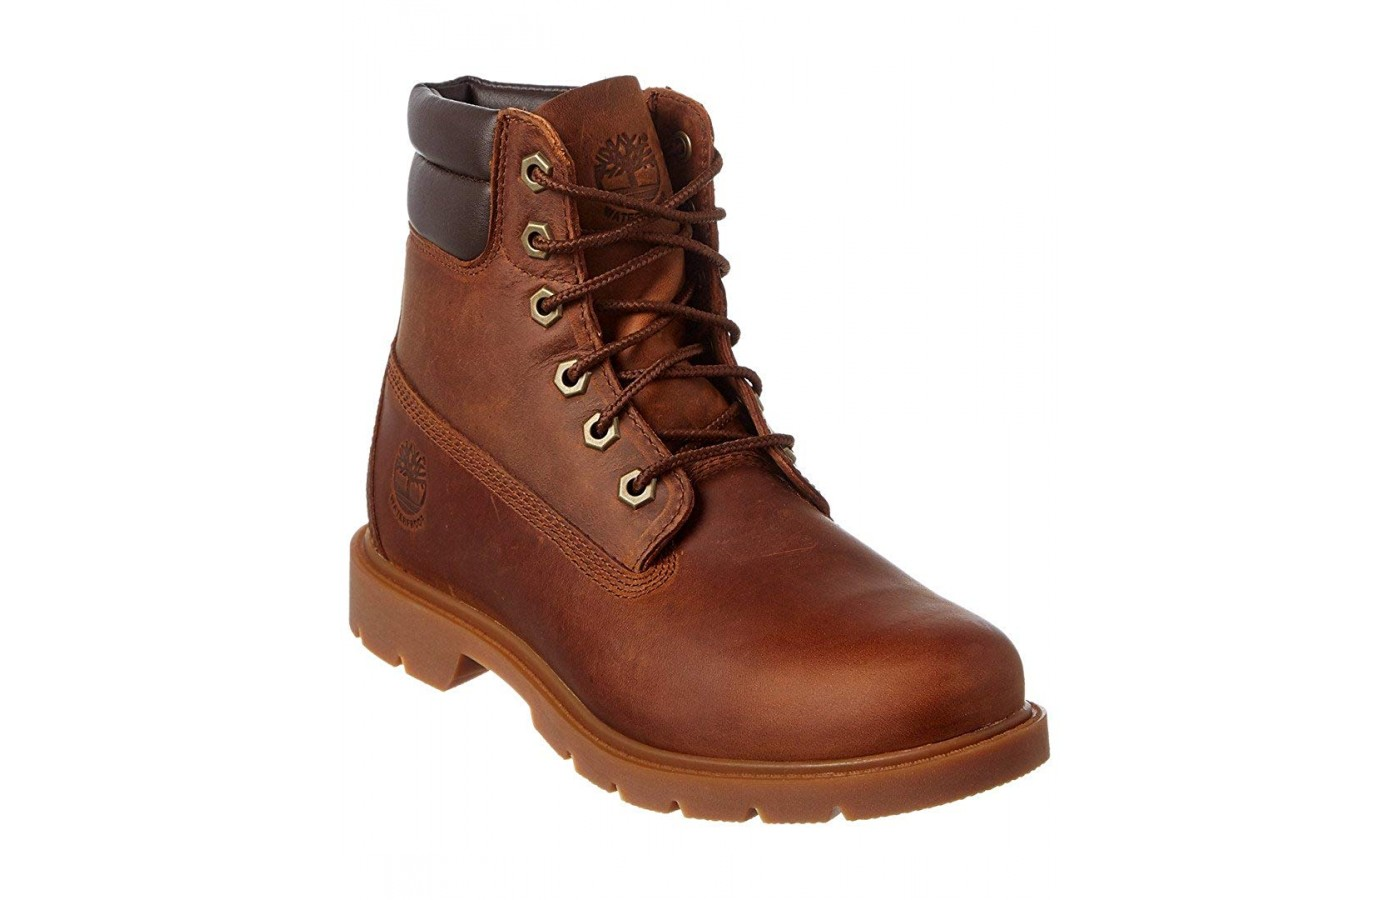 Timberland Womens Linden Woods Angled